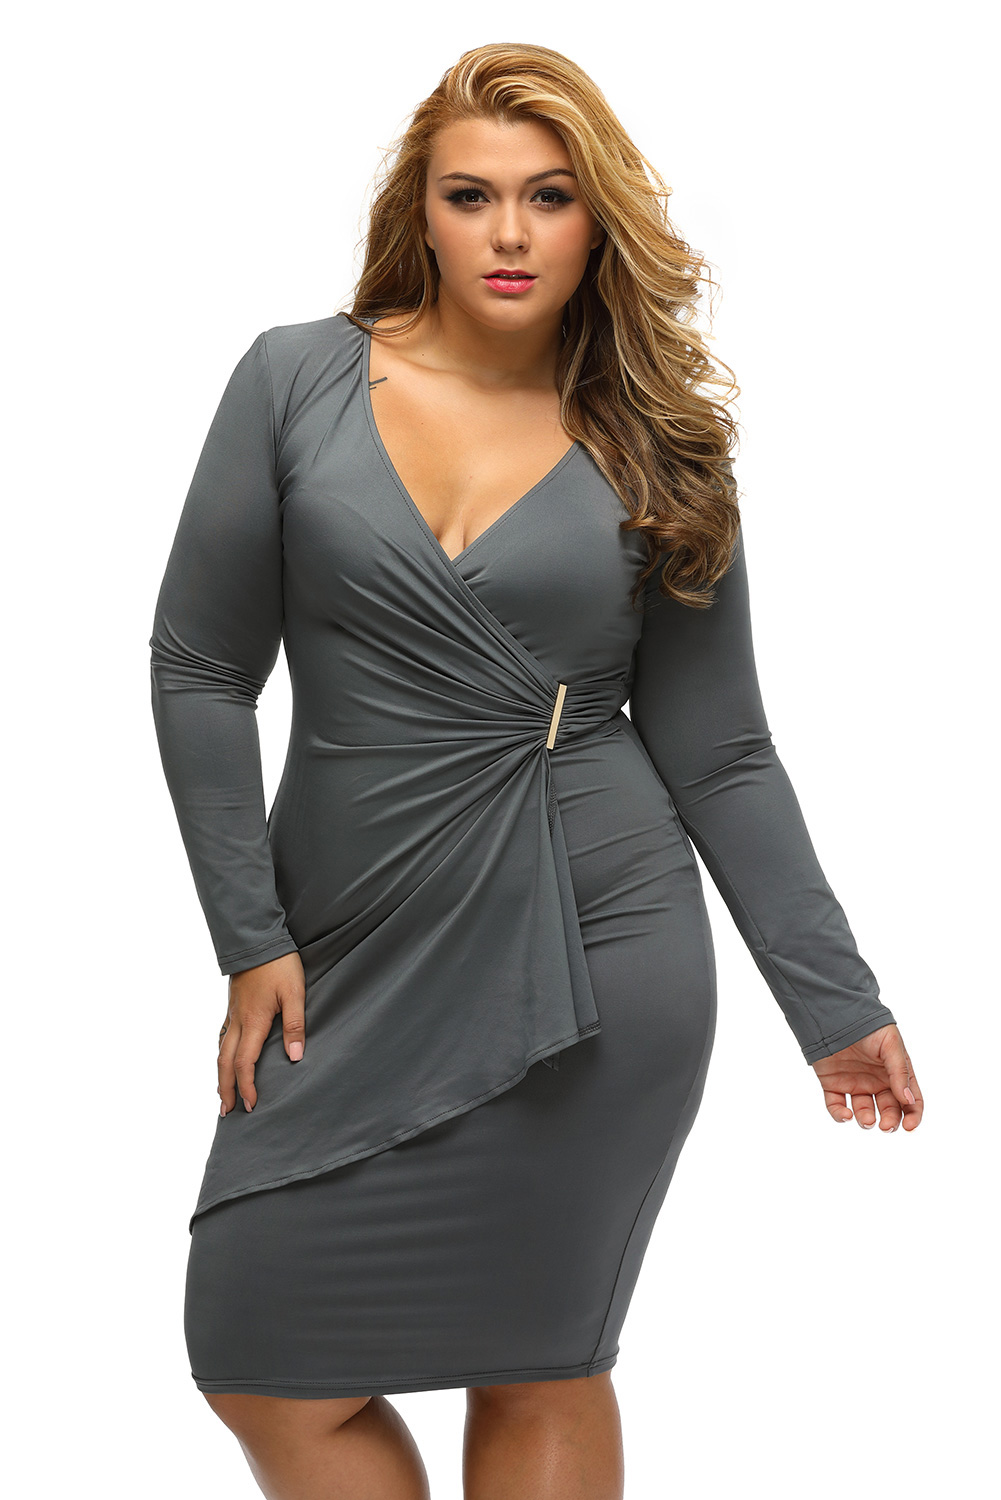 939fcbfc19b7 inasari woman online store – Asymmetric Long Sleeve Wrap Dress S2PSD0127-11  -3